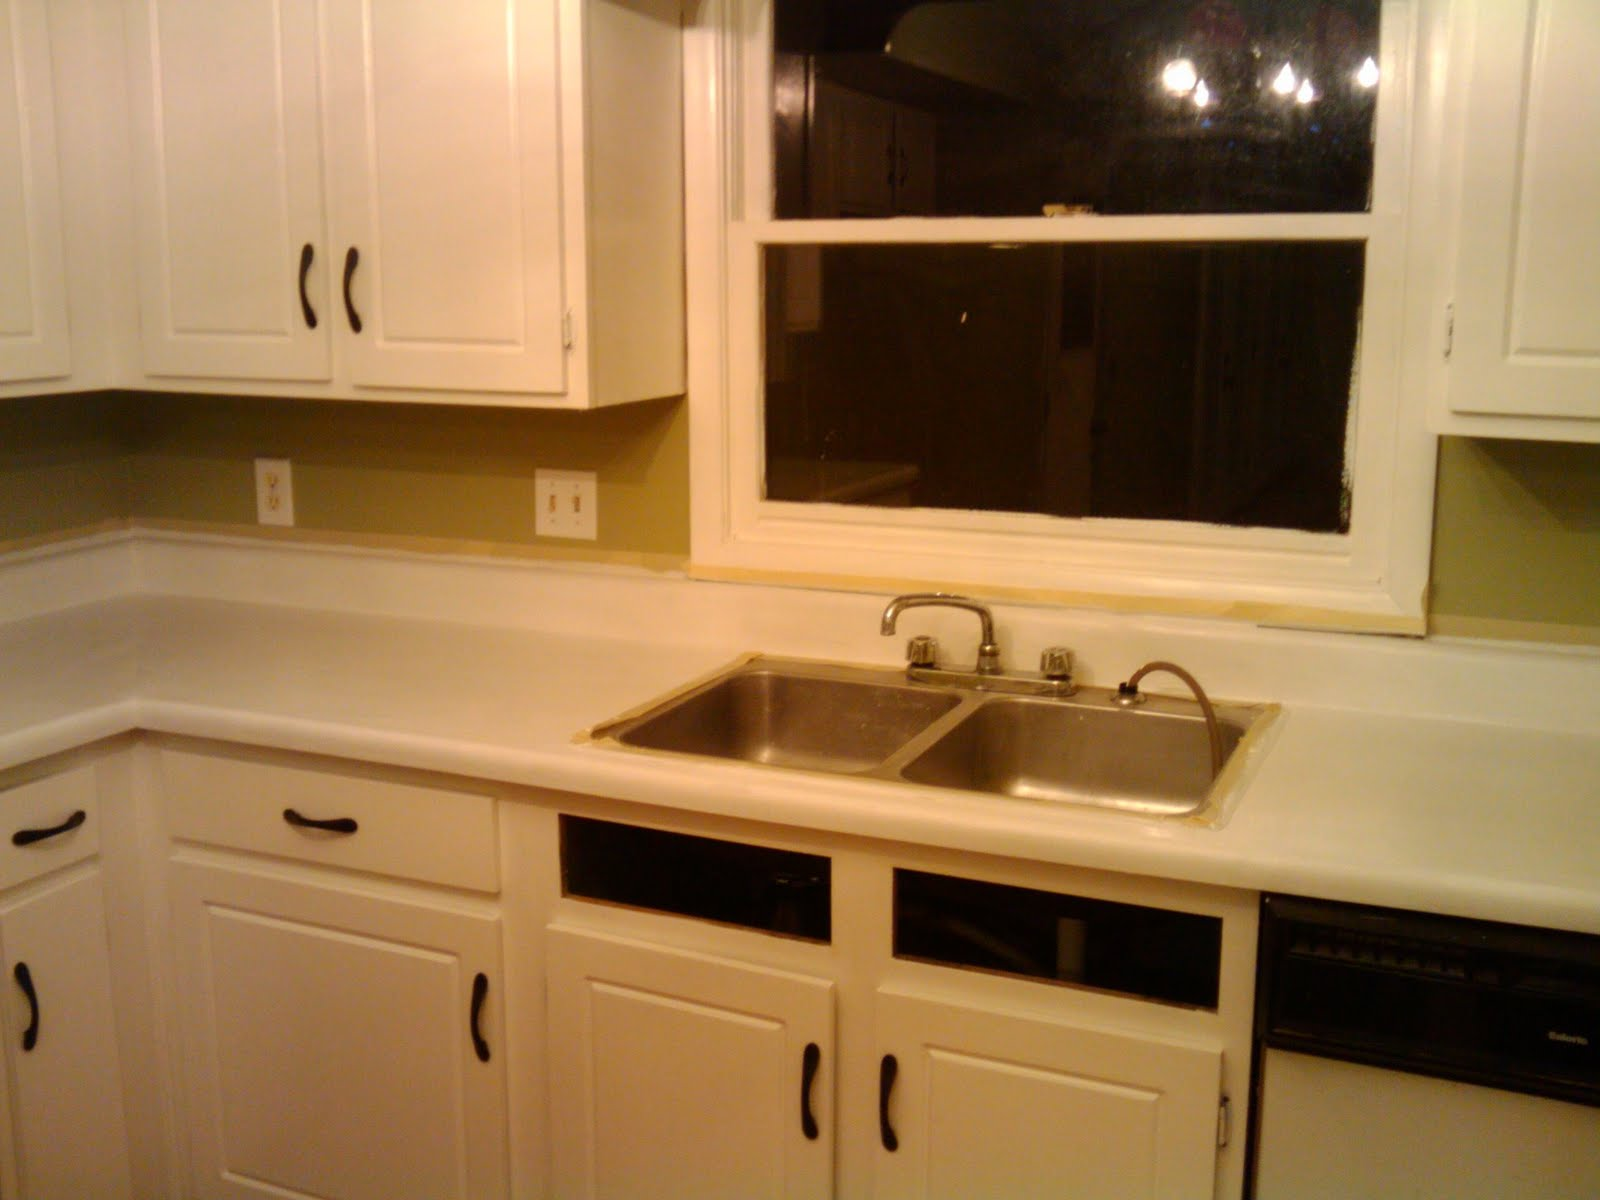 Painting Kitchen Countertops : recessed kitchen lights countertops painting sink recessed kitchen ...